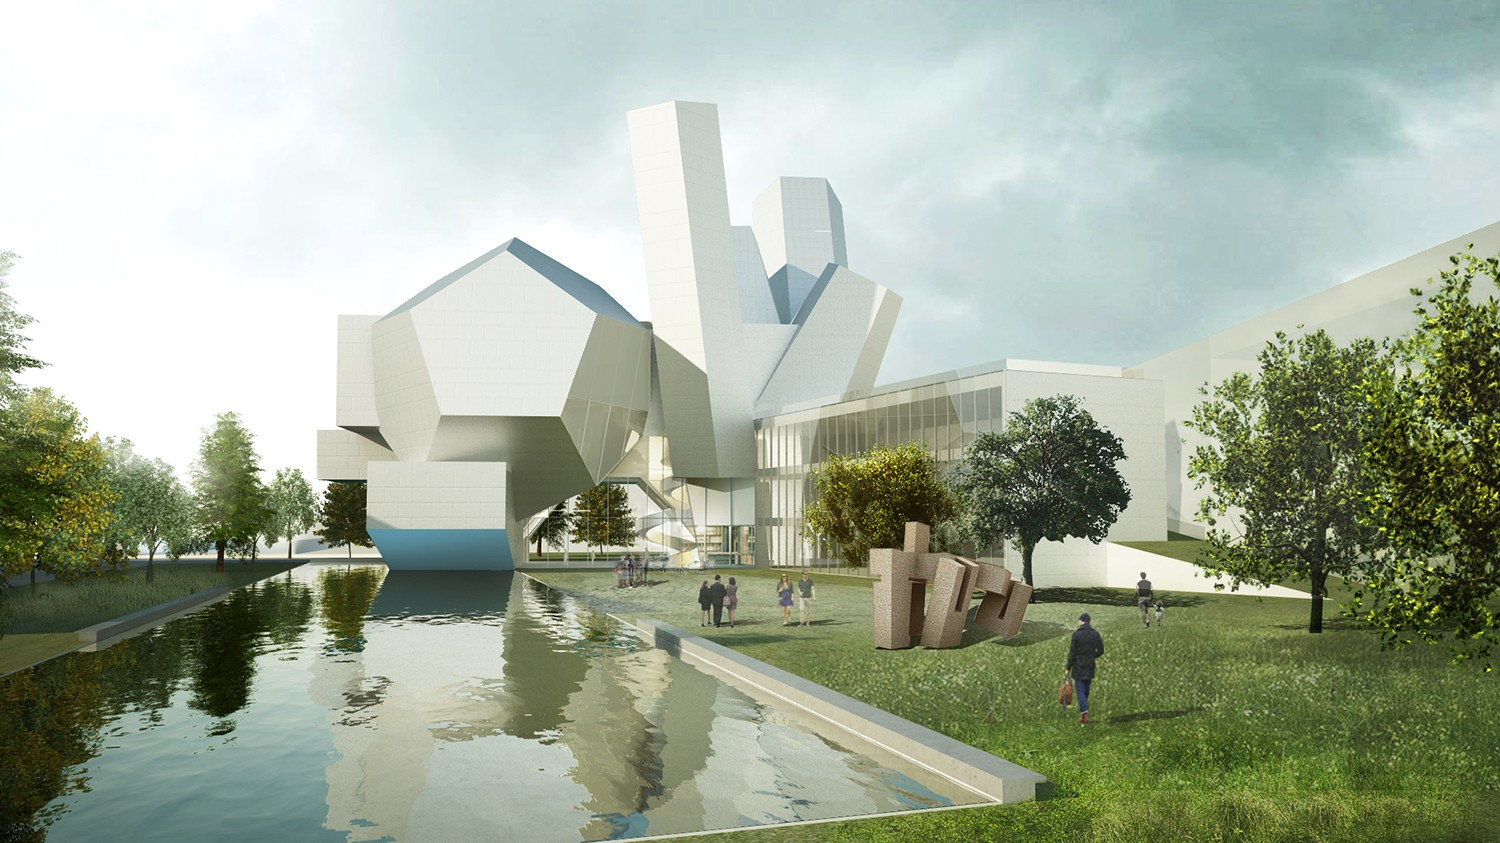 https://stevenholl.sfo2.digitaloceanspaces.com/uploads/projects/project-images/StevenHollArchitects_UCD_CampusView_0619_WH.jpg